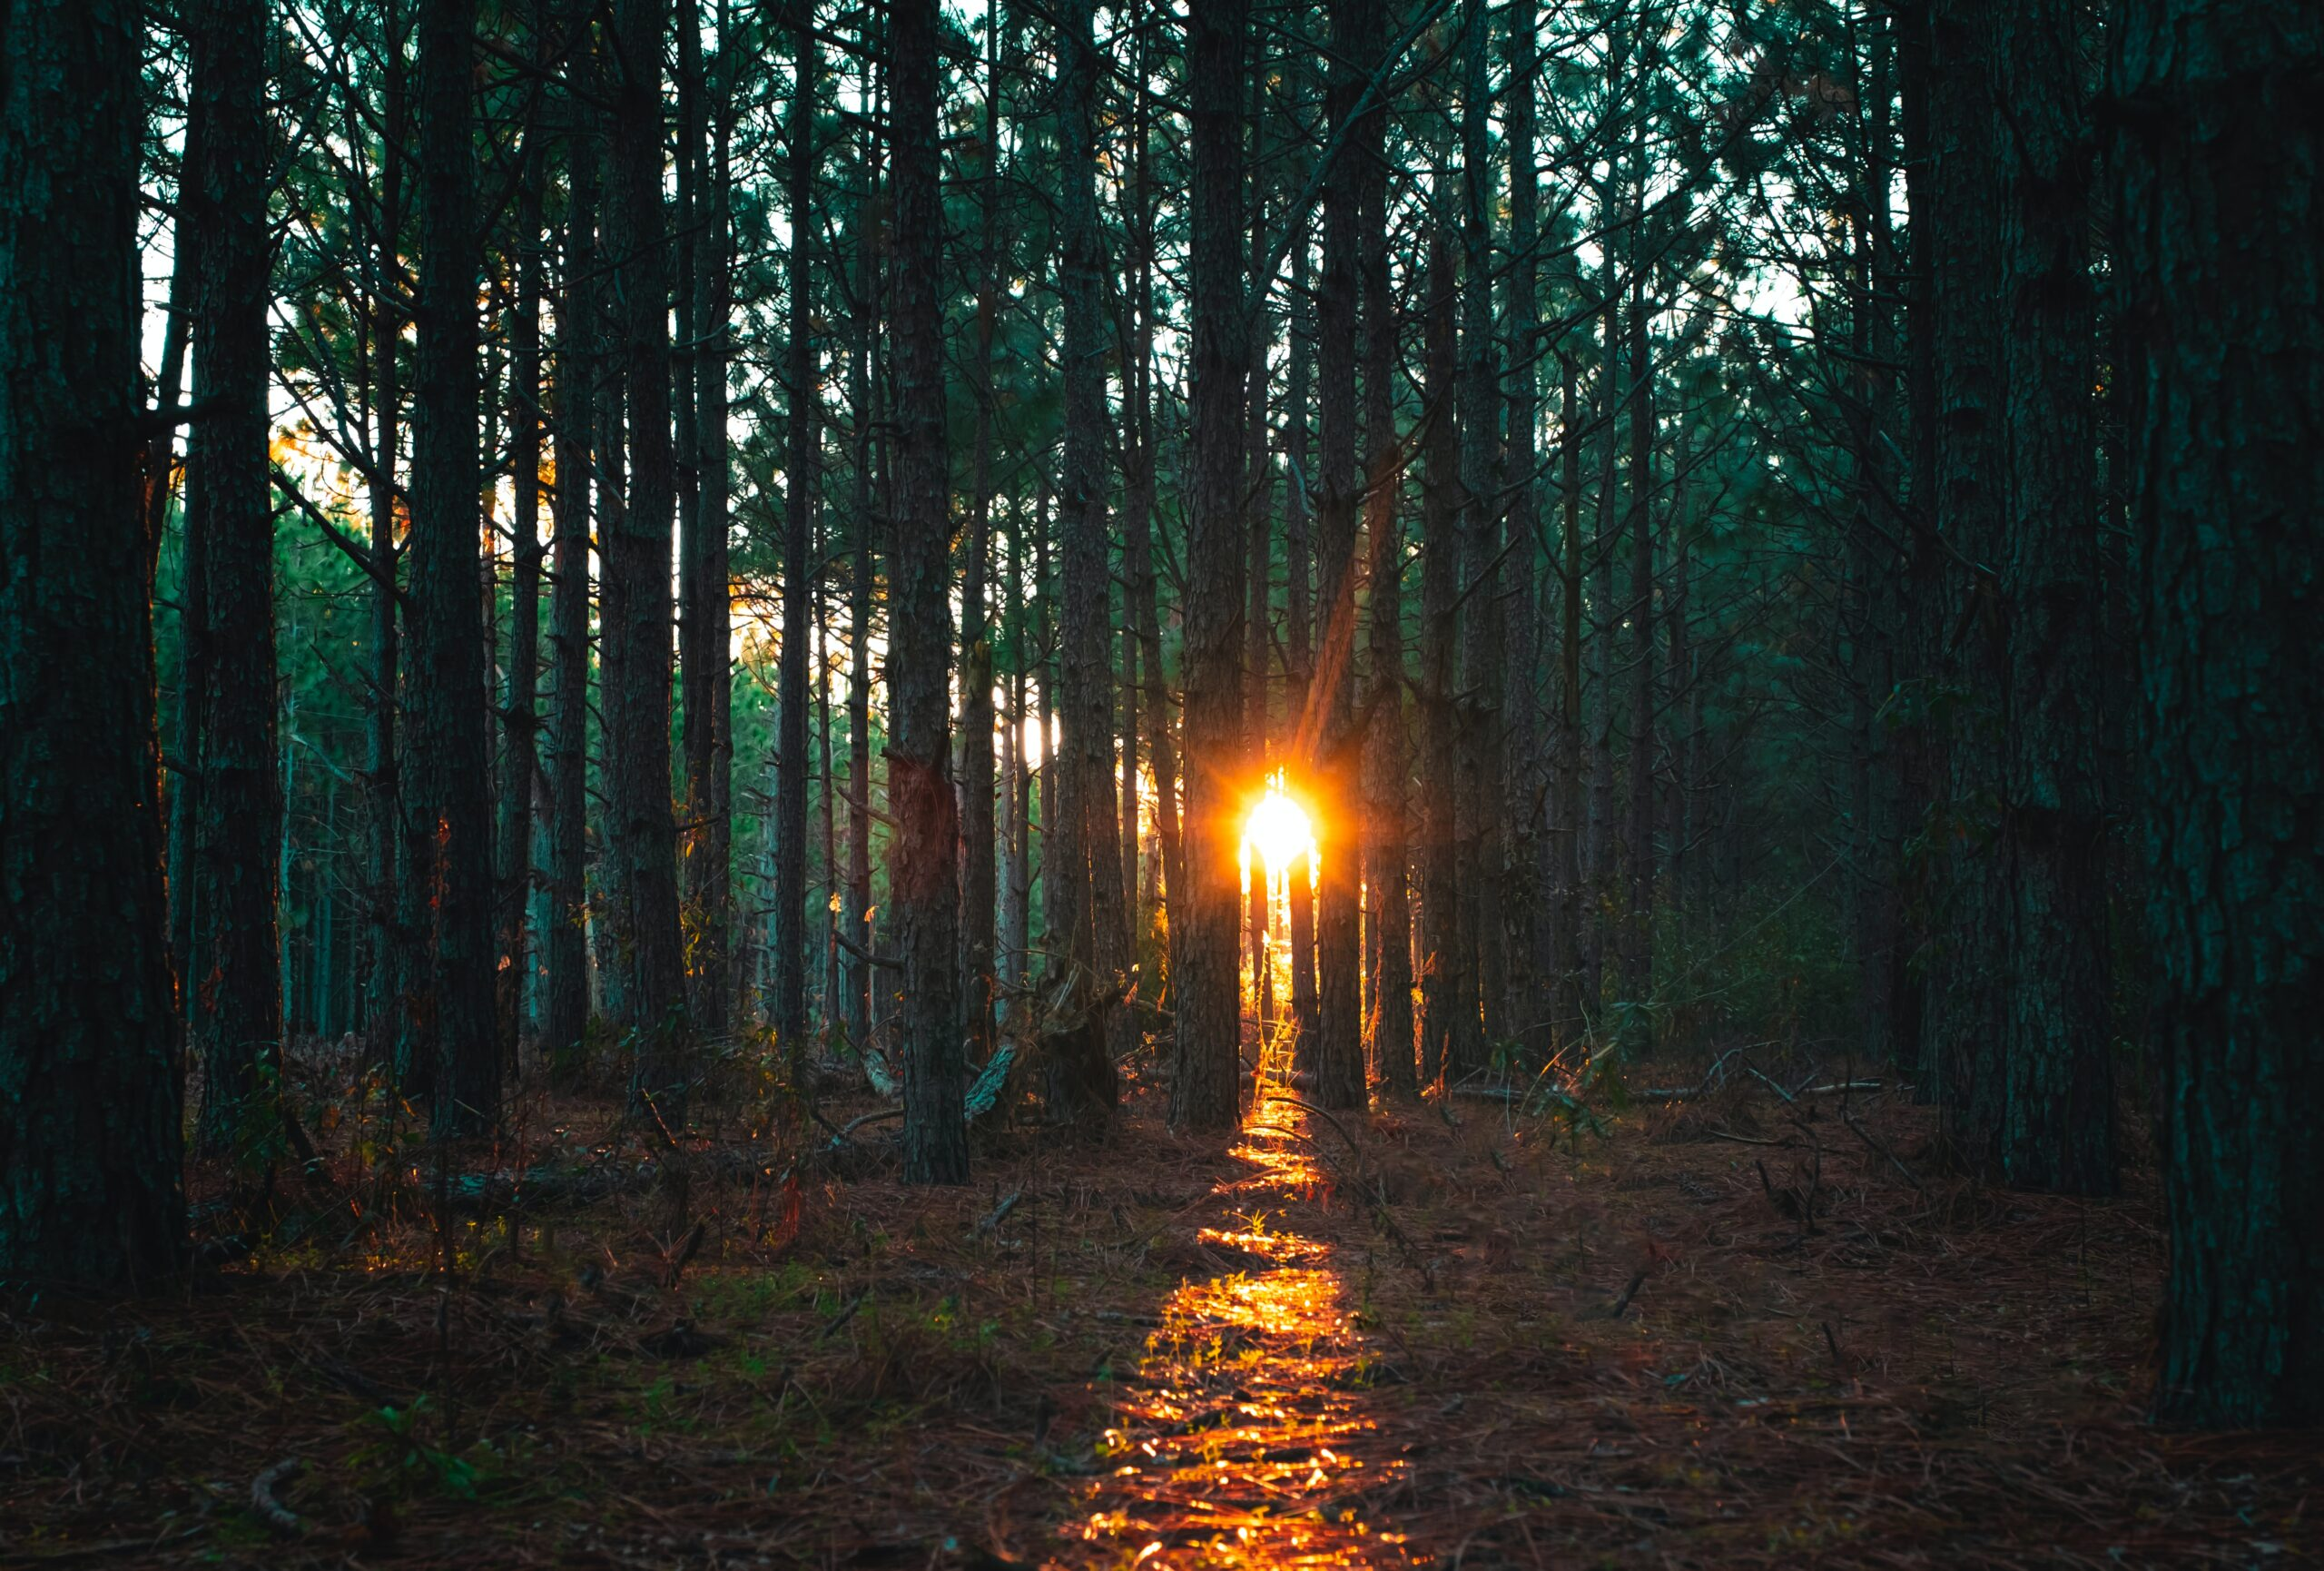 Sunlight through tall trees forest